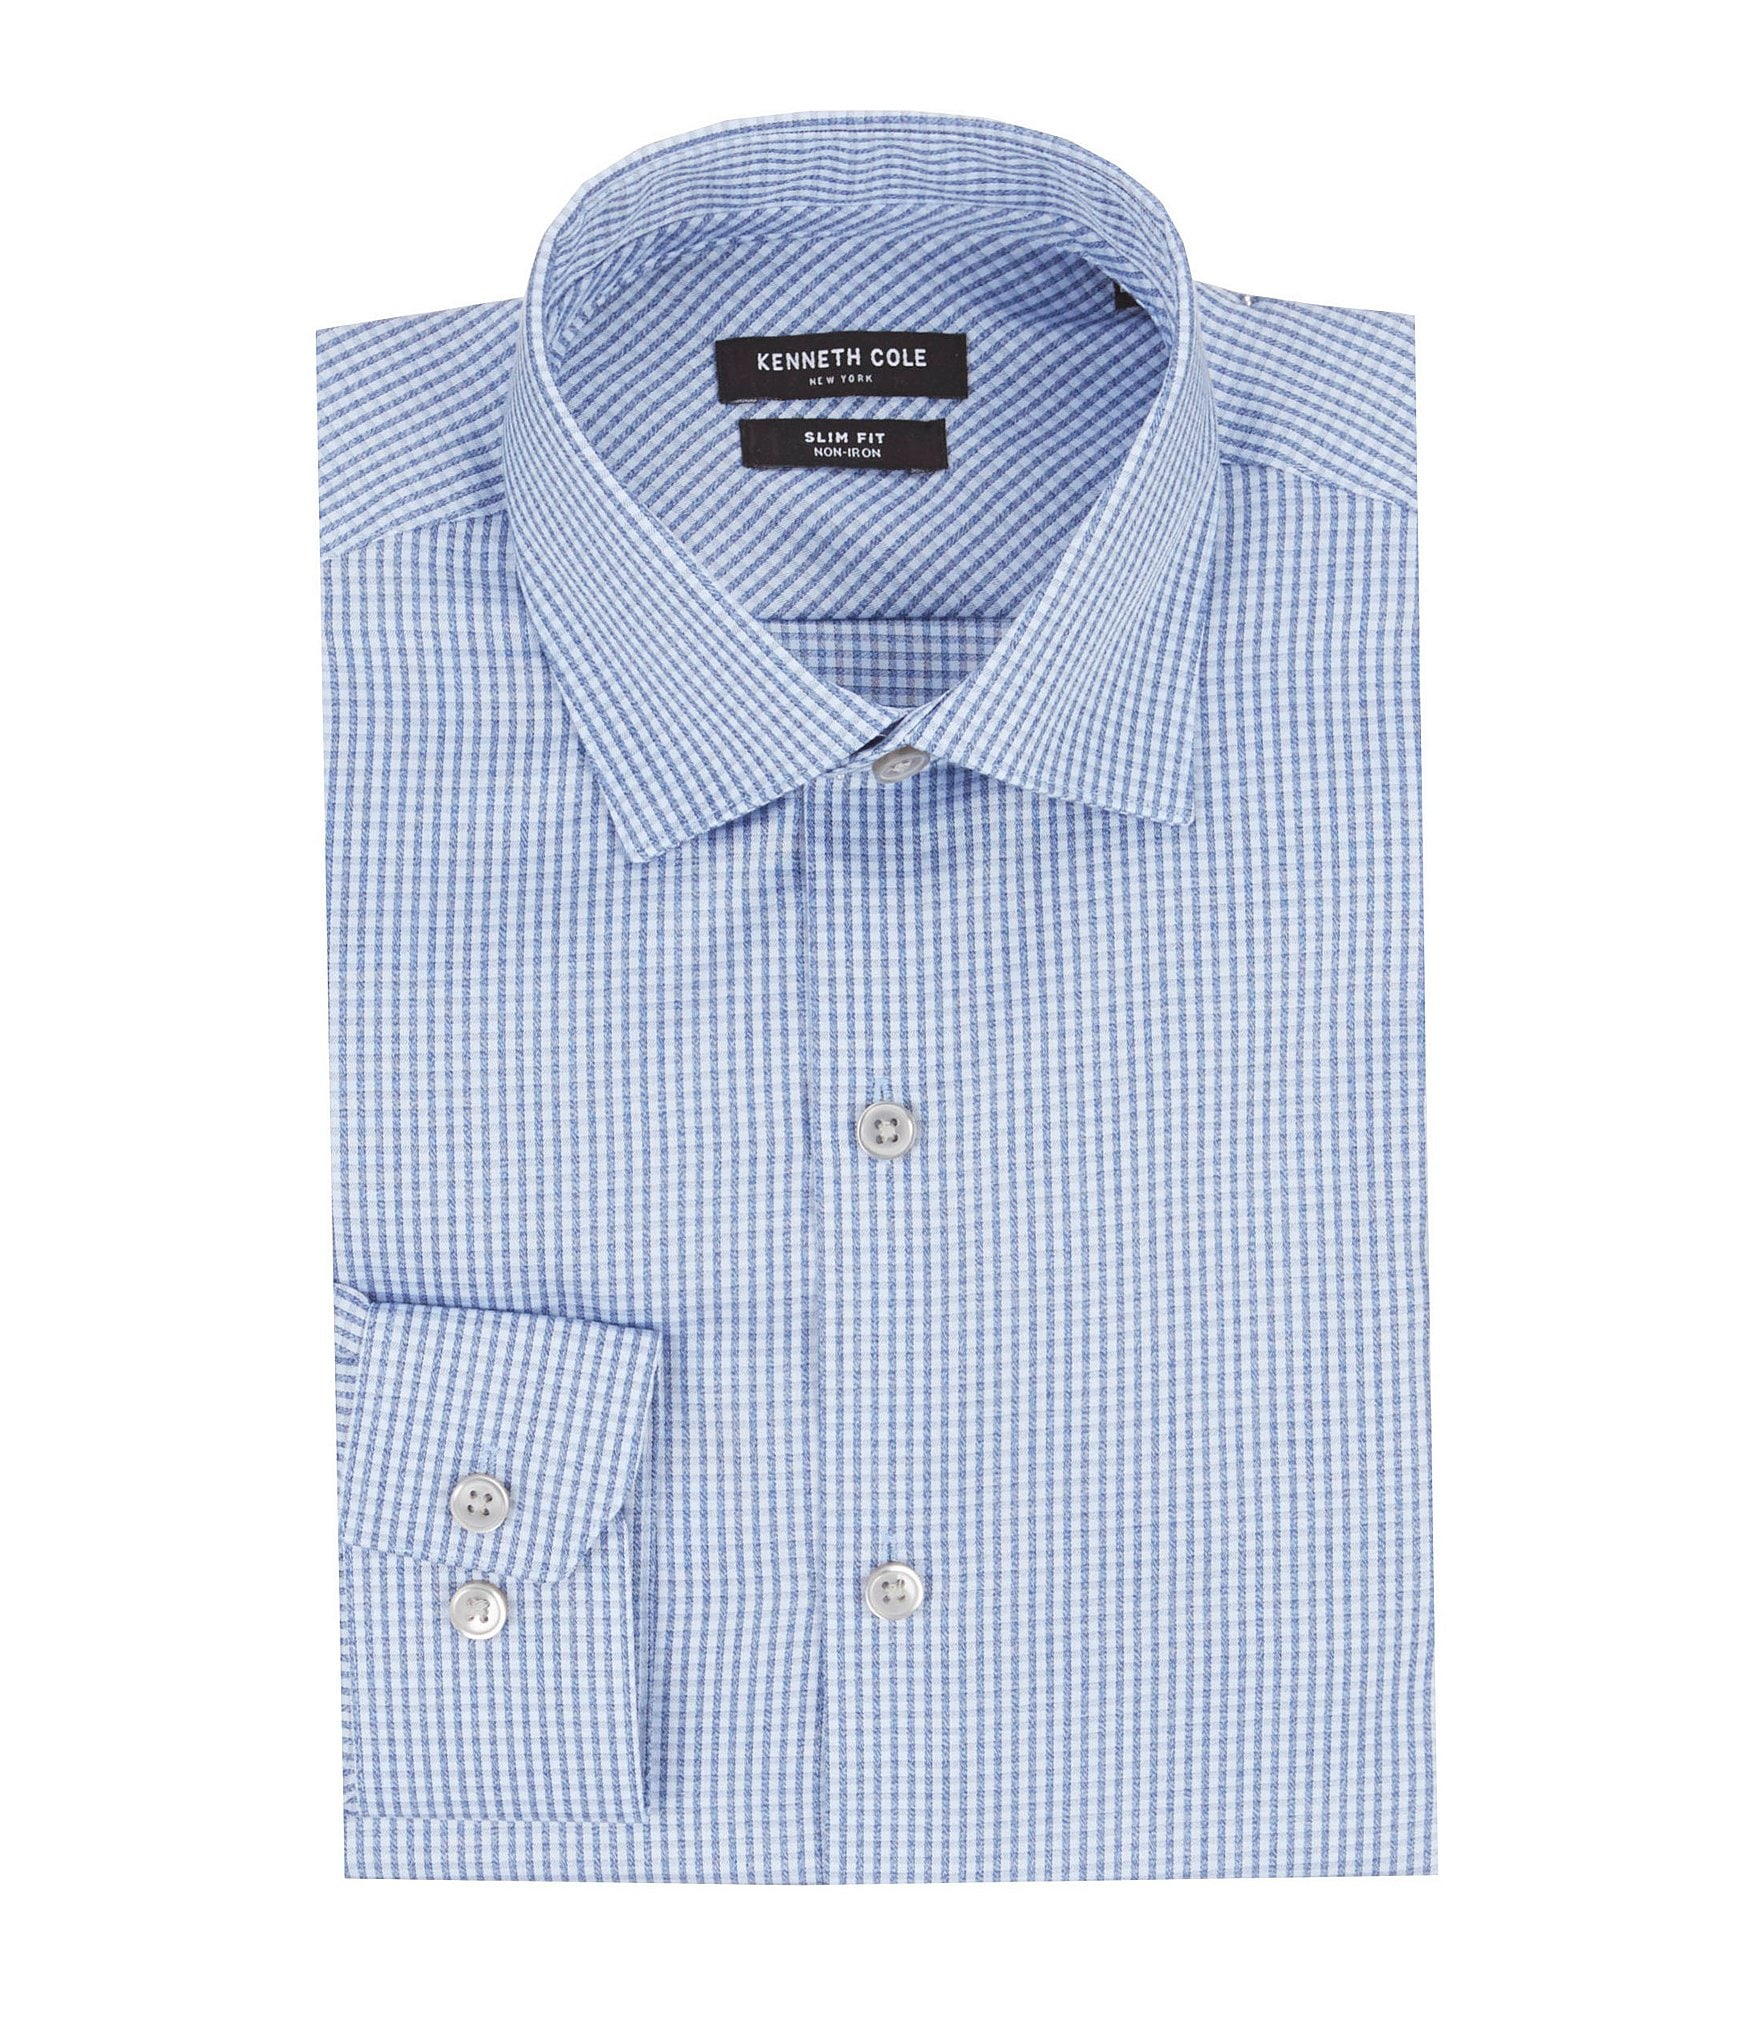 Amazonca dress shirt  Dress Shirts  Shirts Clothing